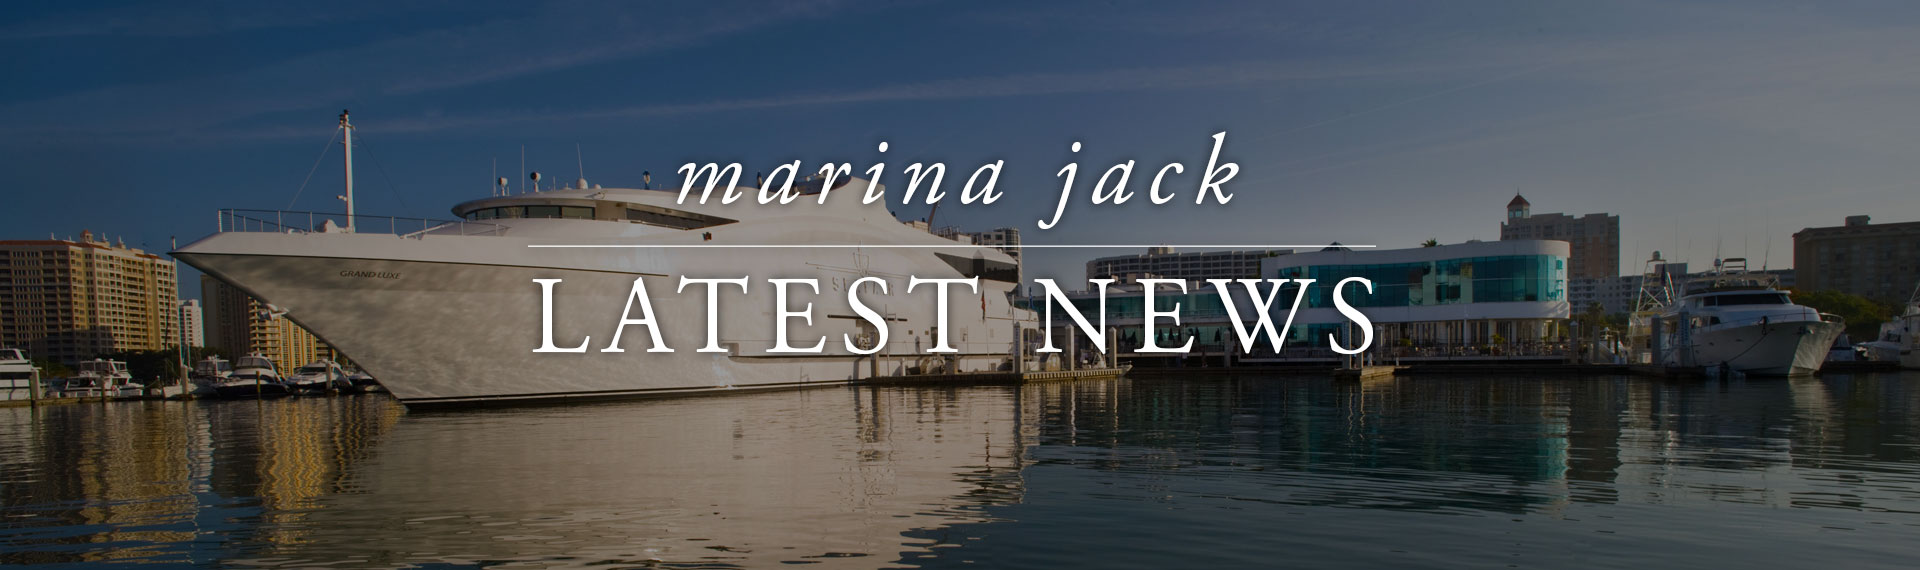 Marina Jack Latest News